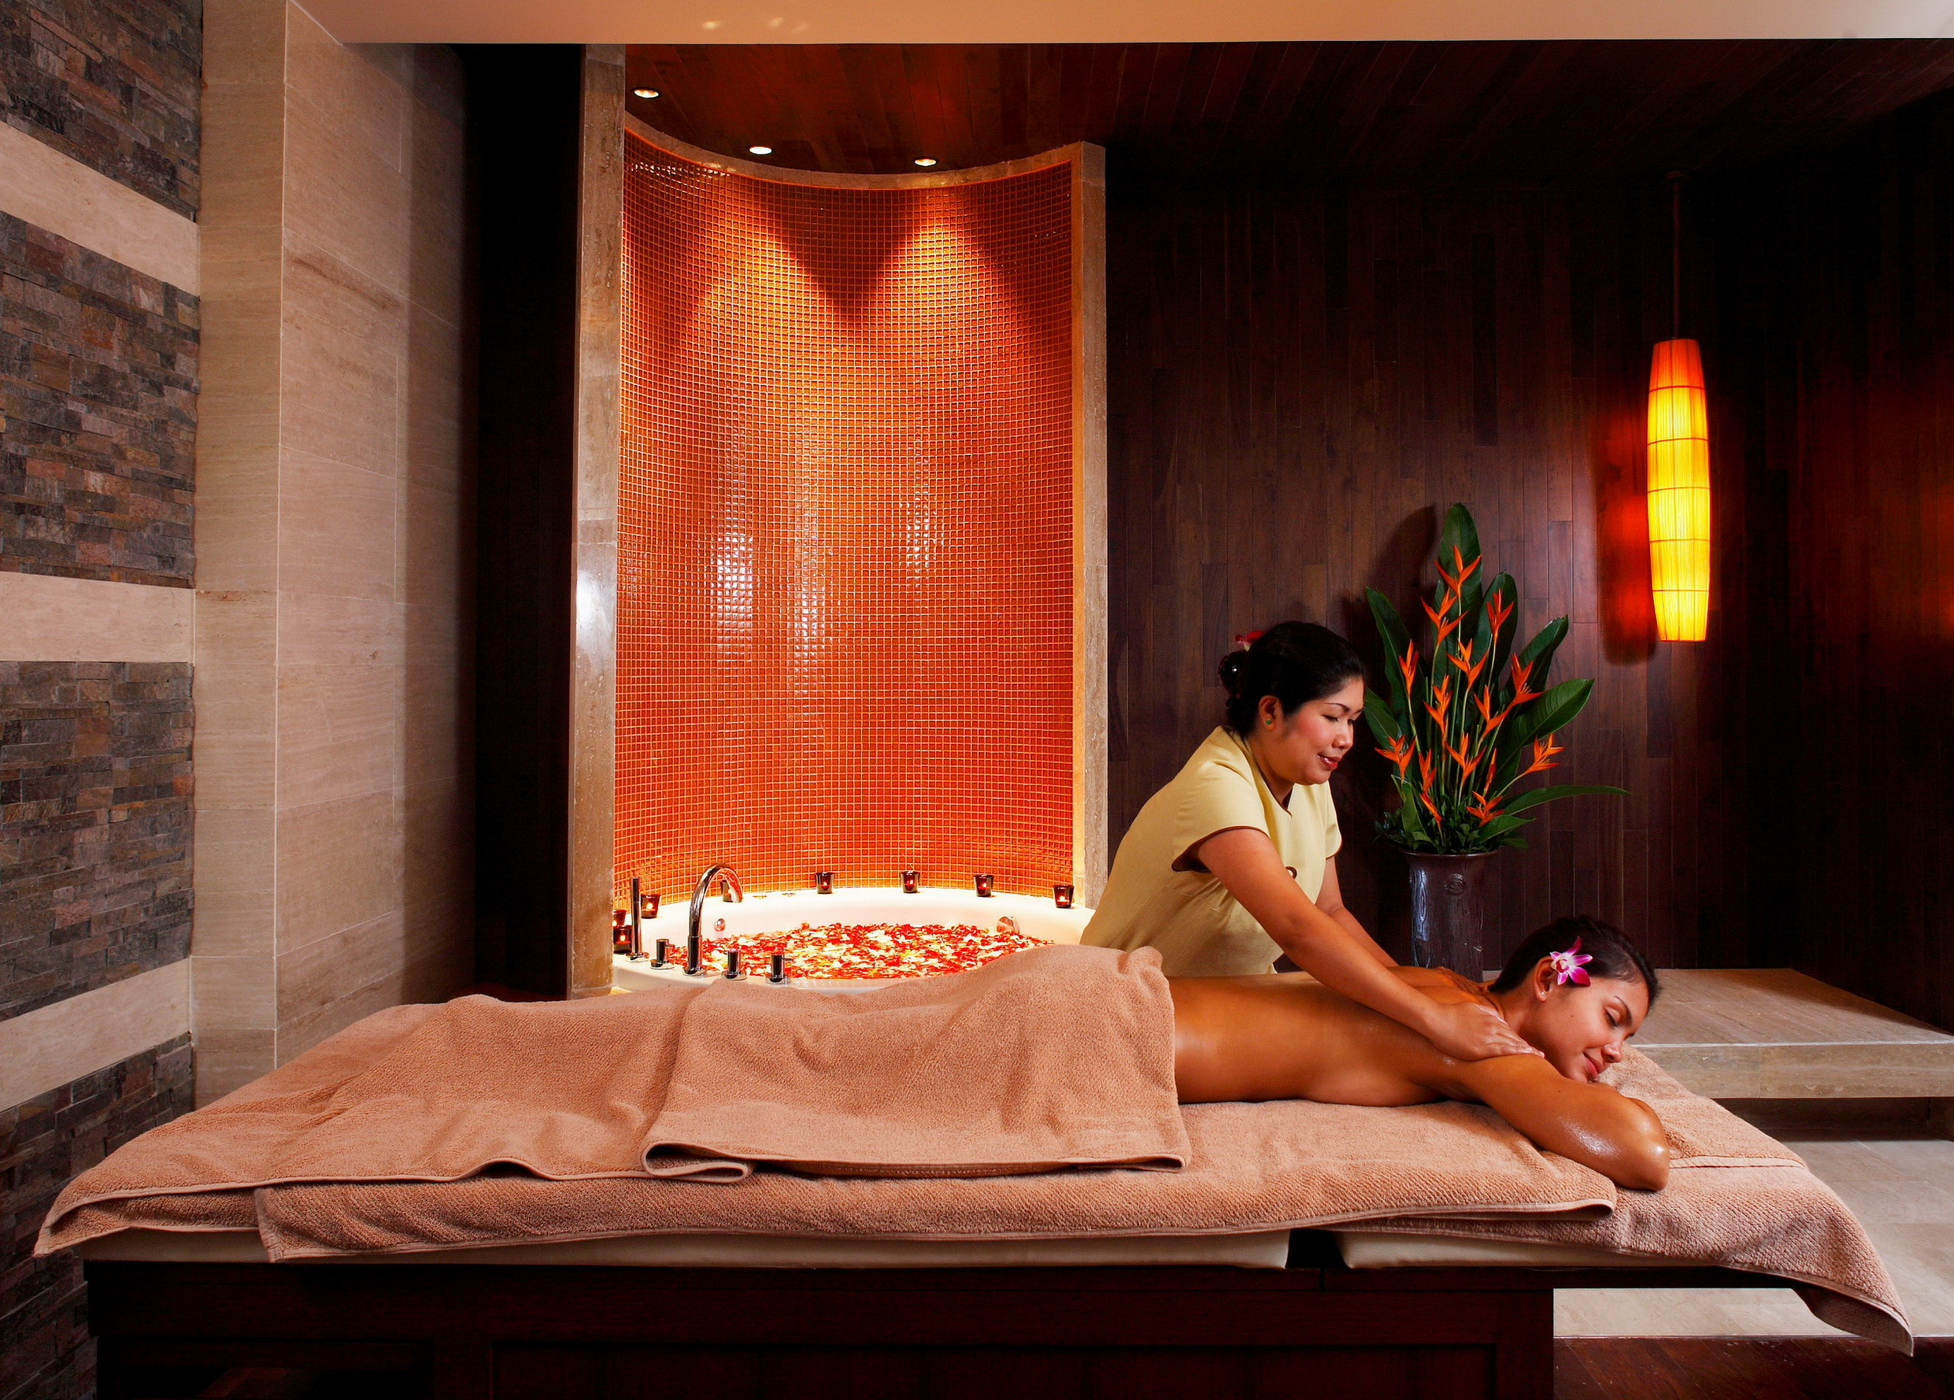 salong siam olje massage